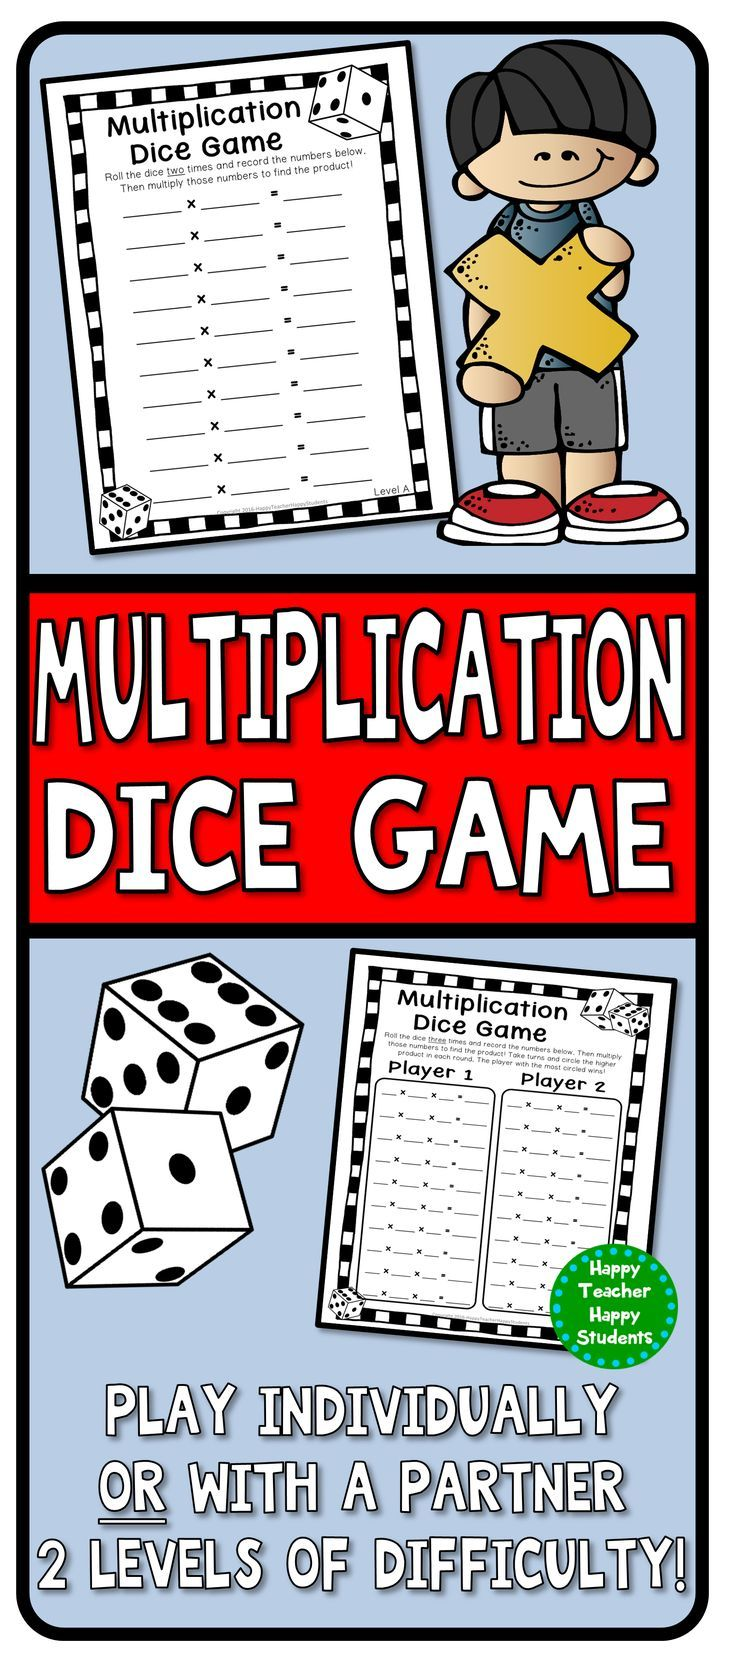 All you need for these Multiplication Dice Games are dice and these printable Multiplication games! Students roll the dice 2 times (Level A) or 3 times (Level B) and multiply the numbers they roll. This game can be played individually or with a partner.